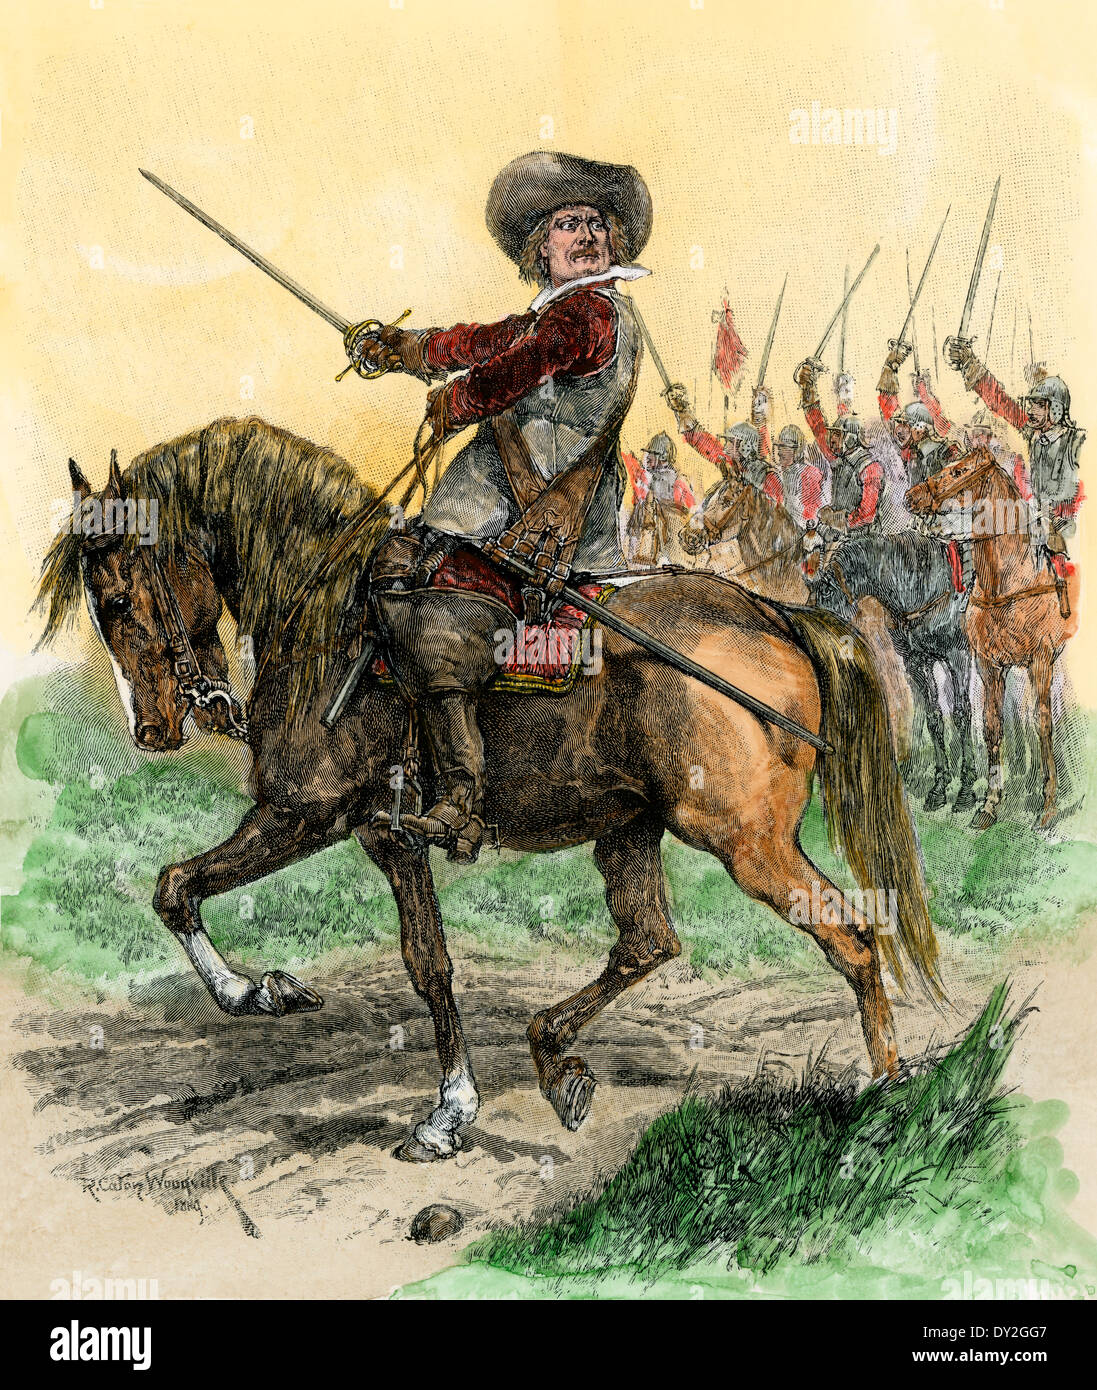 Cromwell leading troops at the Battle of Marston Moor, English Civil War,  1644. Hand-colored woodcut